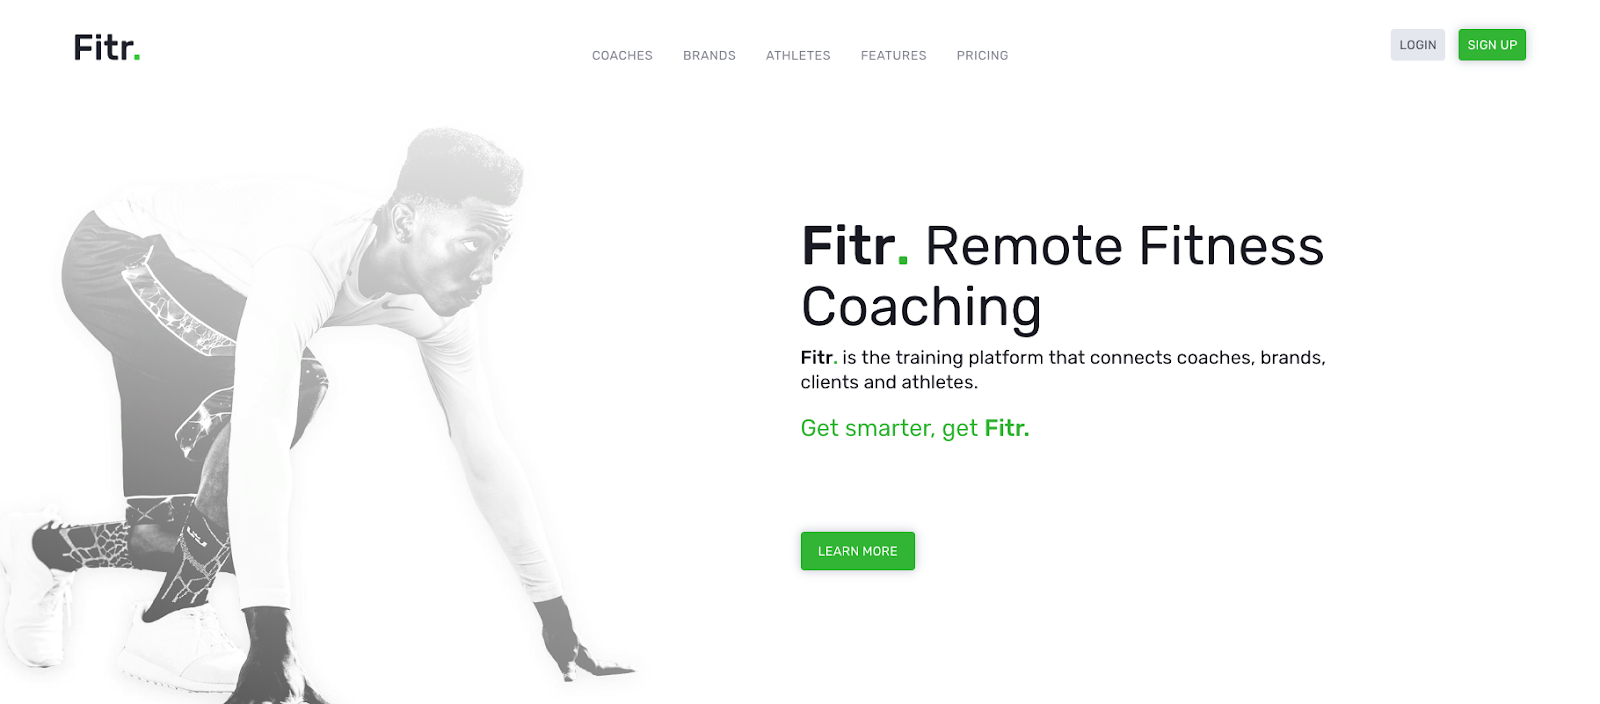 Fitr's new website